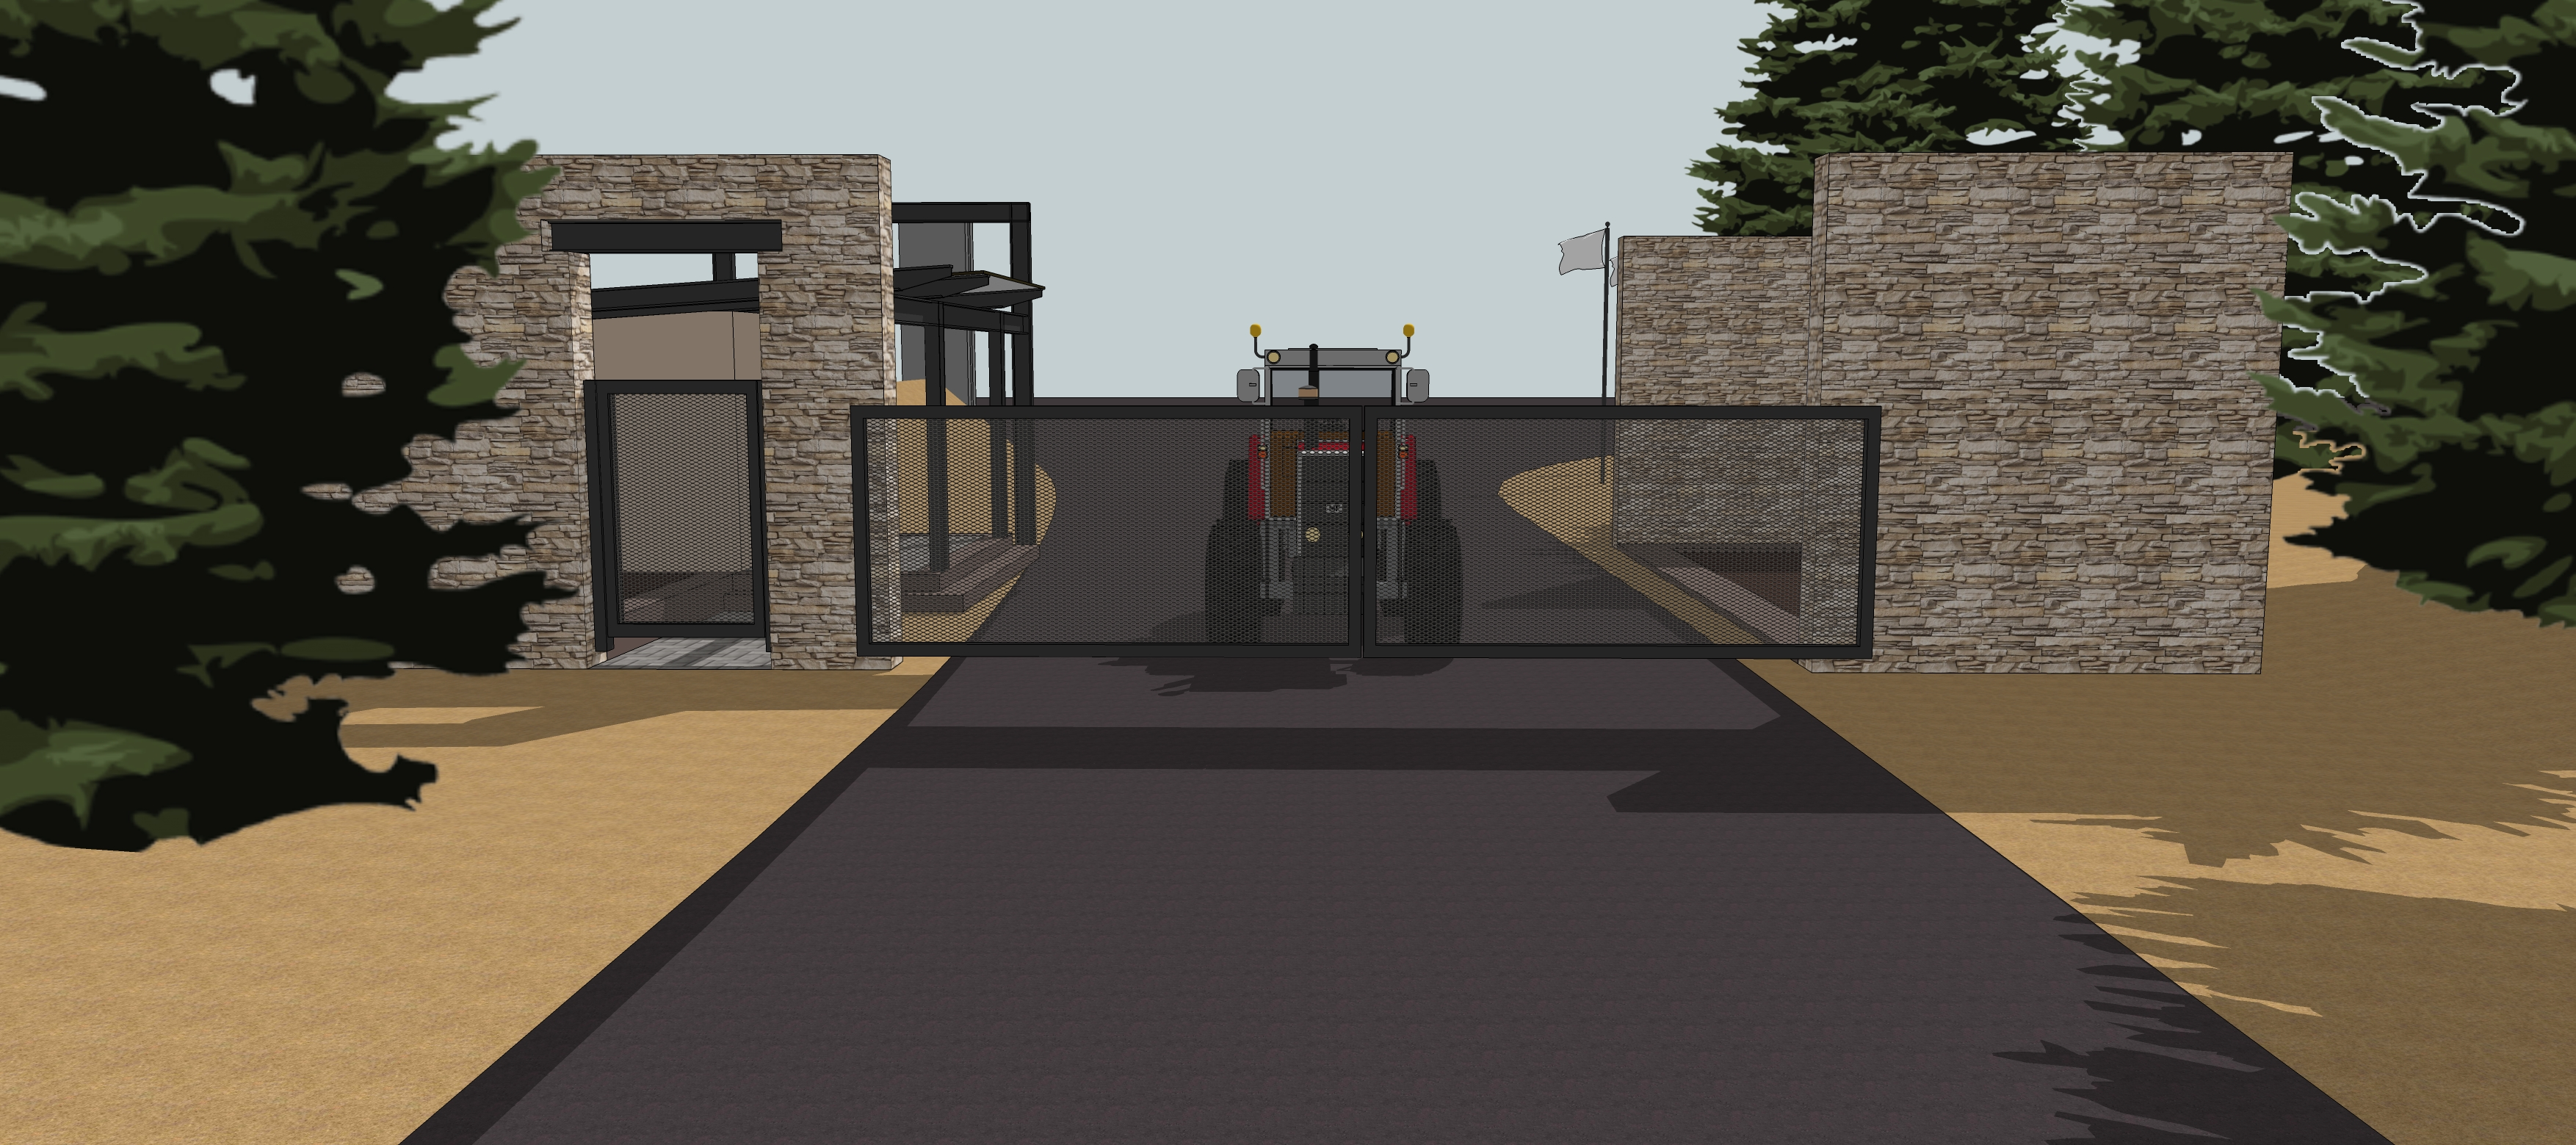 Agricultural Training Centre Zambia (Proposal) 2